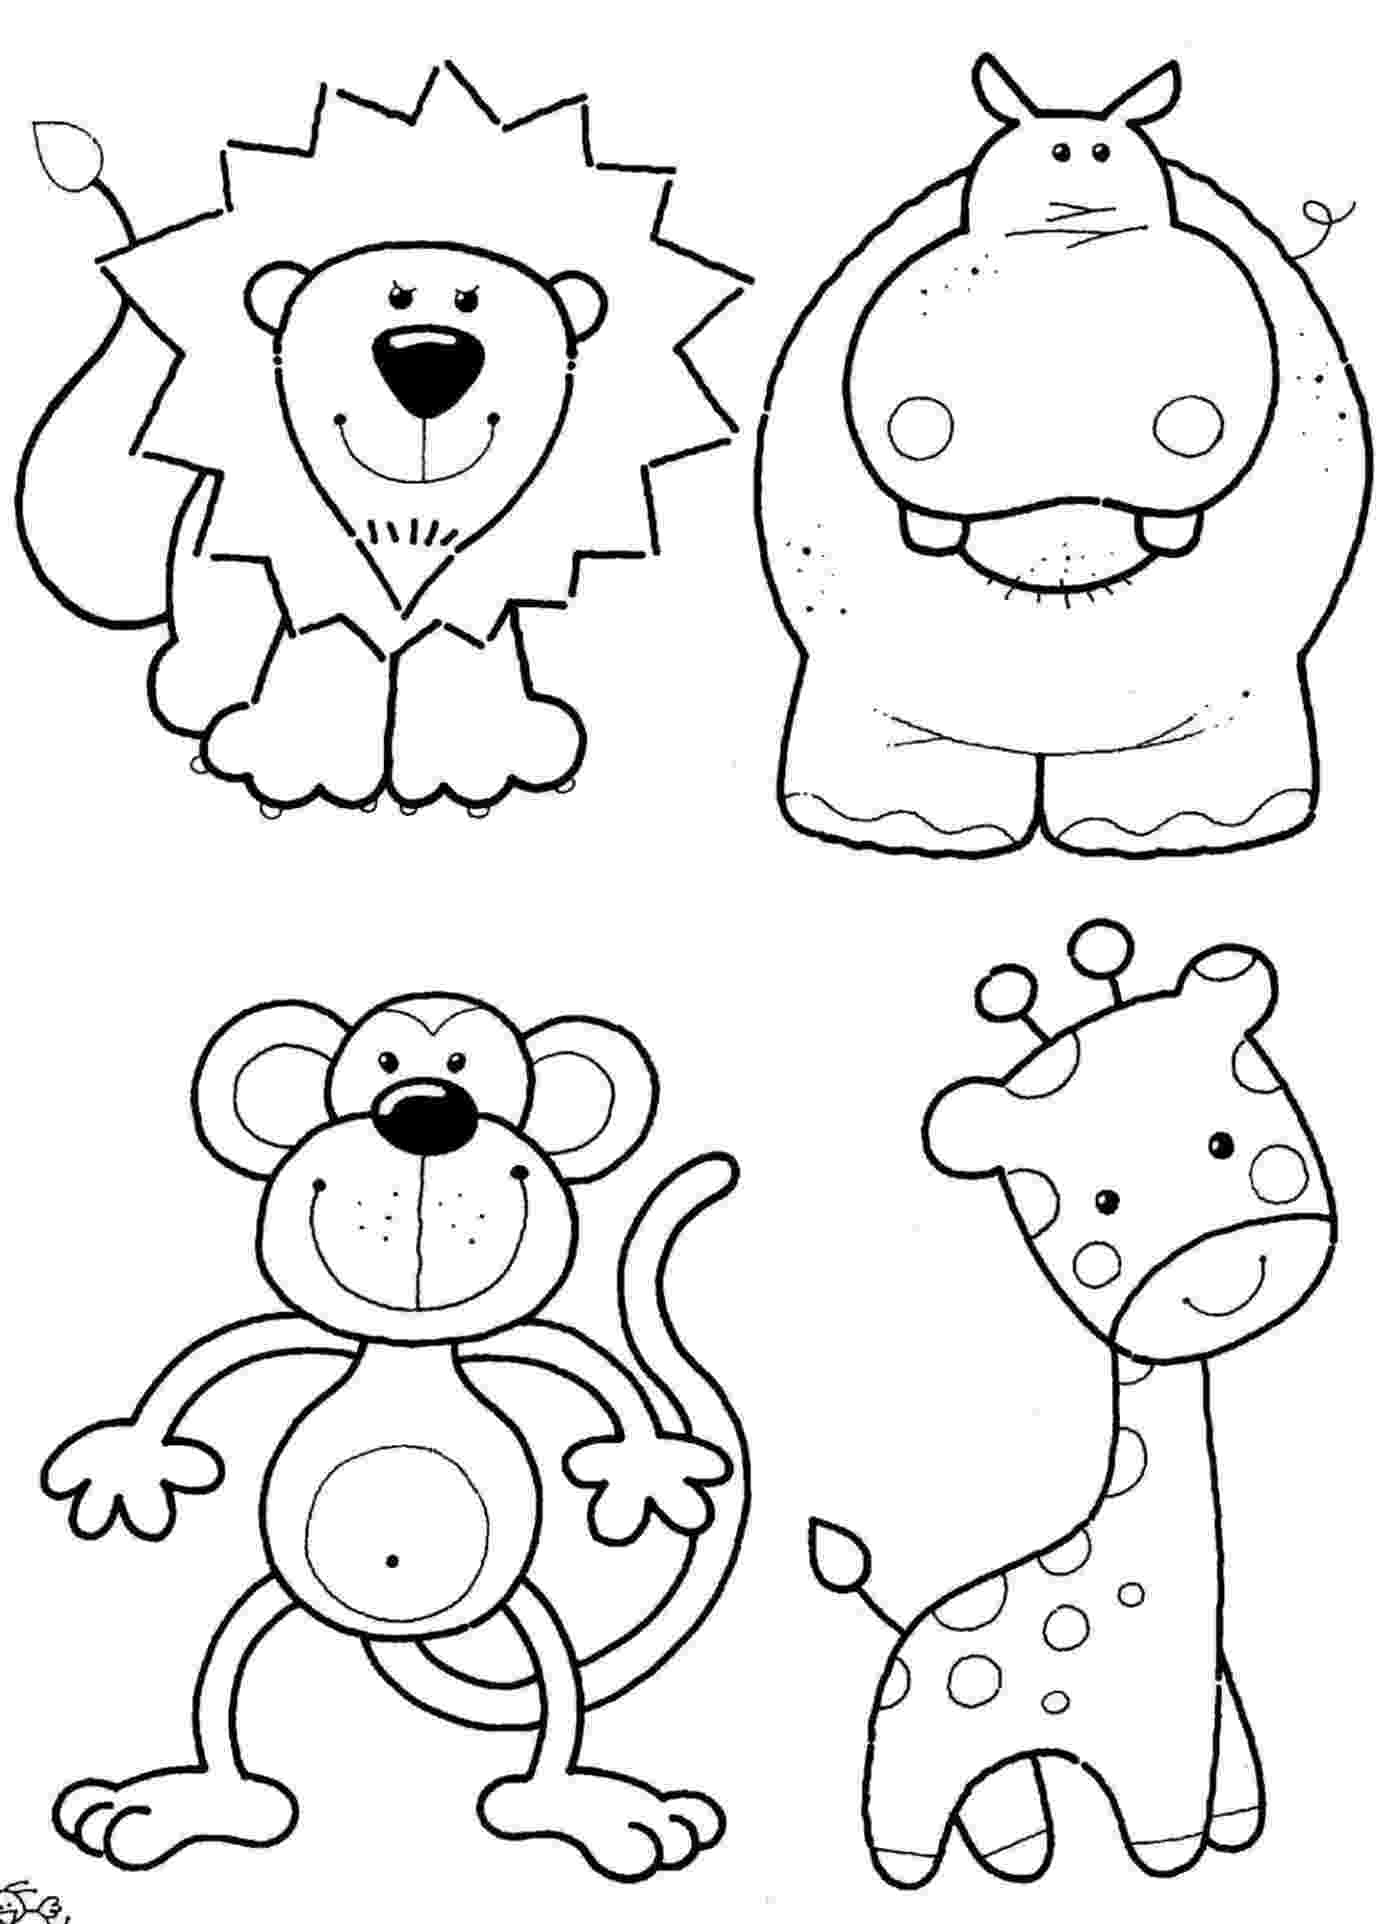 animal coloring pages toddlers animal coloring pages best coloring pages for kids pages toddlers animal coloring